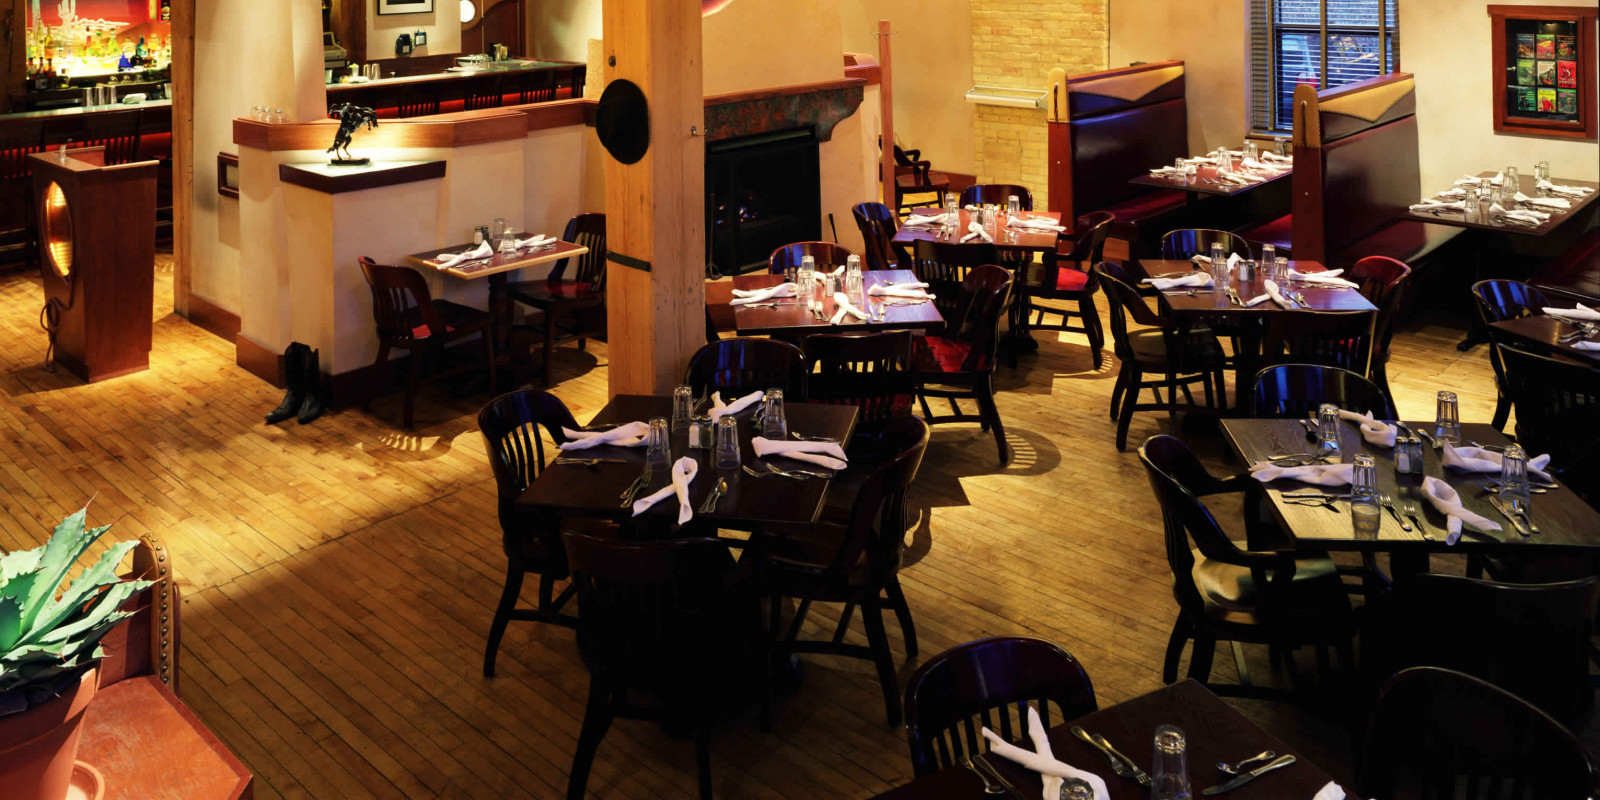 interior dining space at Eldorado Grill, Madison, WI